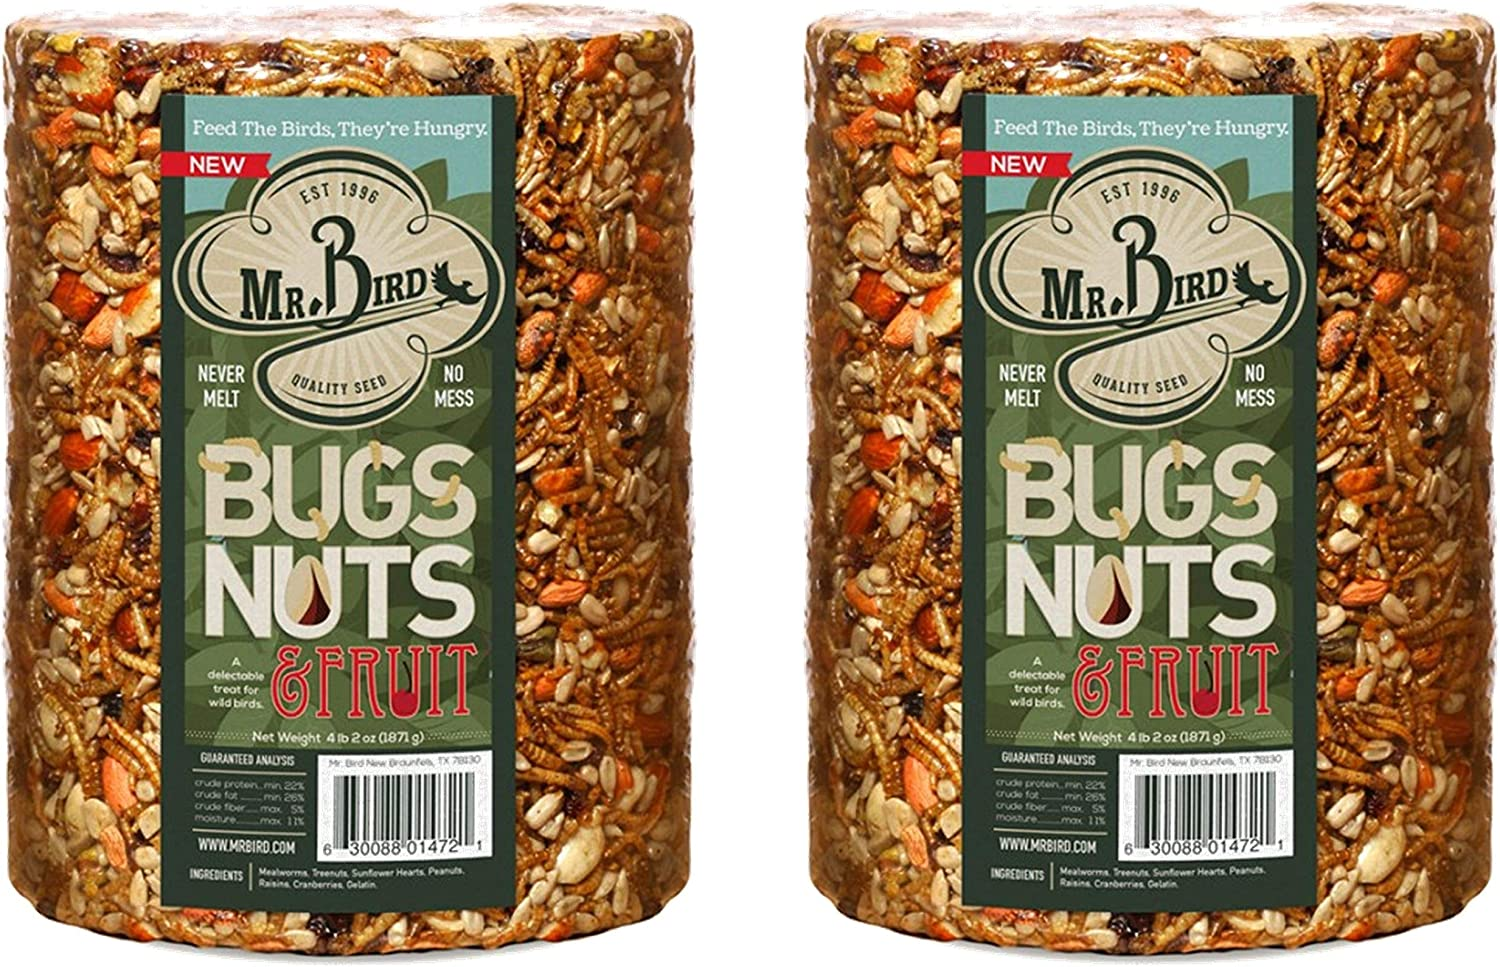 2-Pack Mr. Bird Bugs, Nuts & Fruit Wild Bird Seed Large Cylinder 4 lbs. 2 oz.